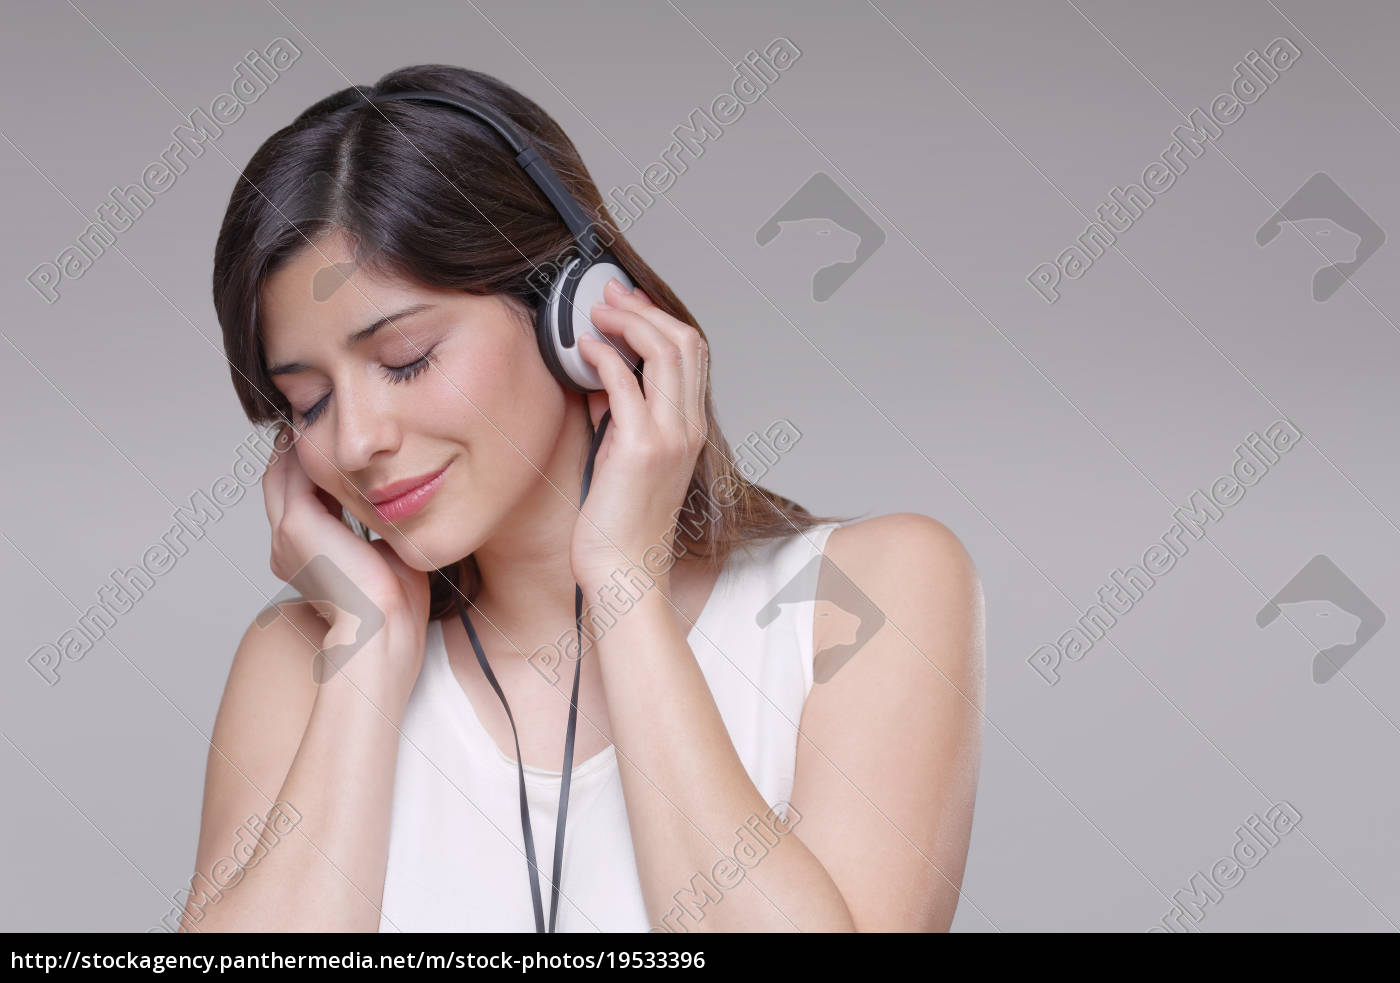 young, woman, wearing, headphones, , listening, to - 19533396